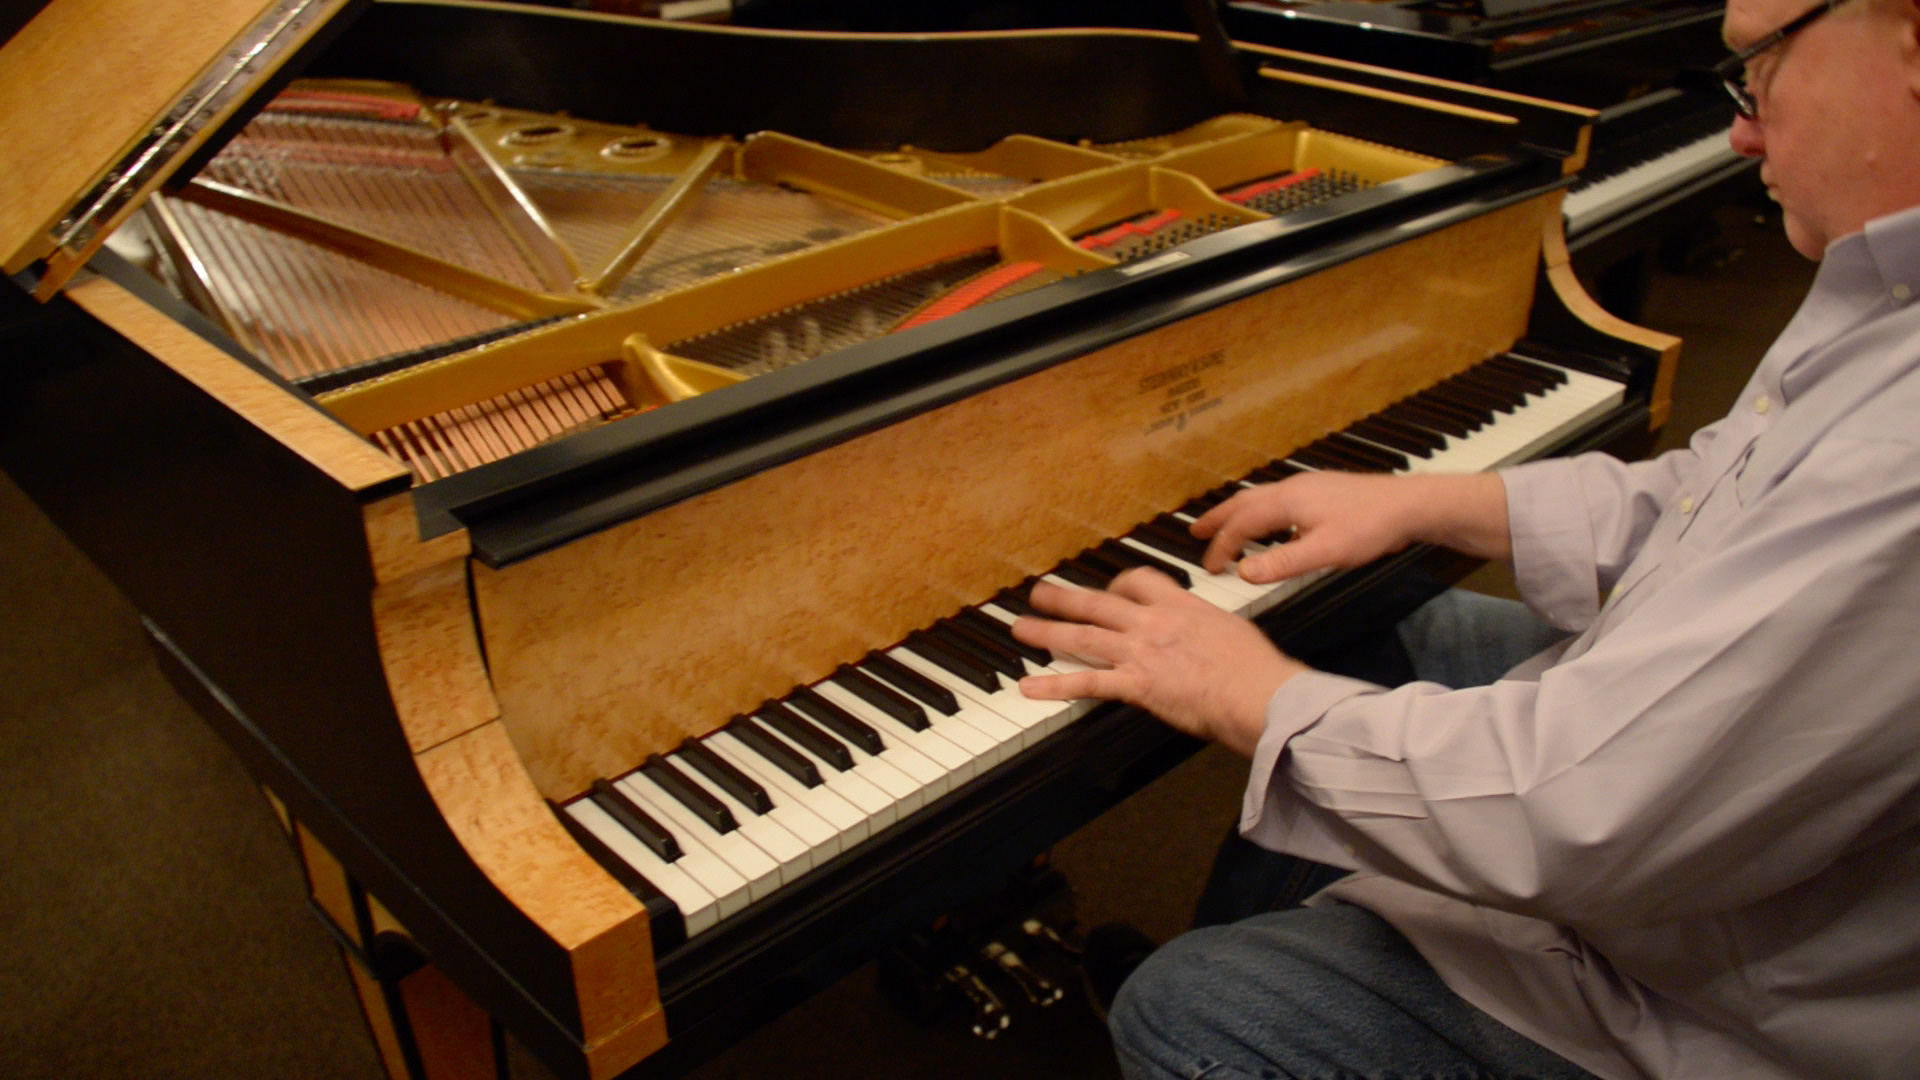 Shawn Plays a Restored Steinway